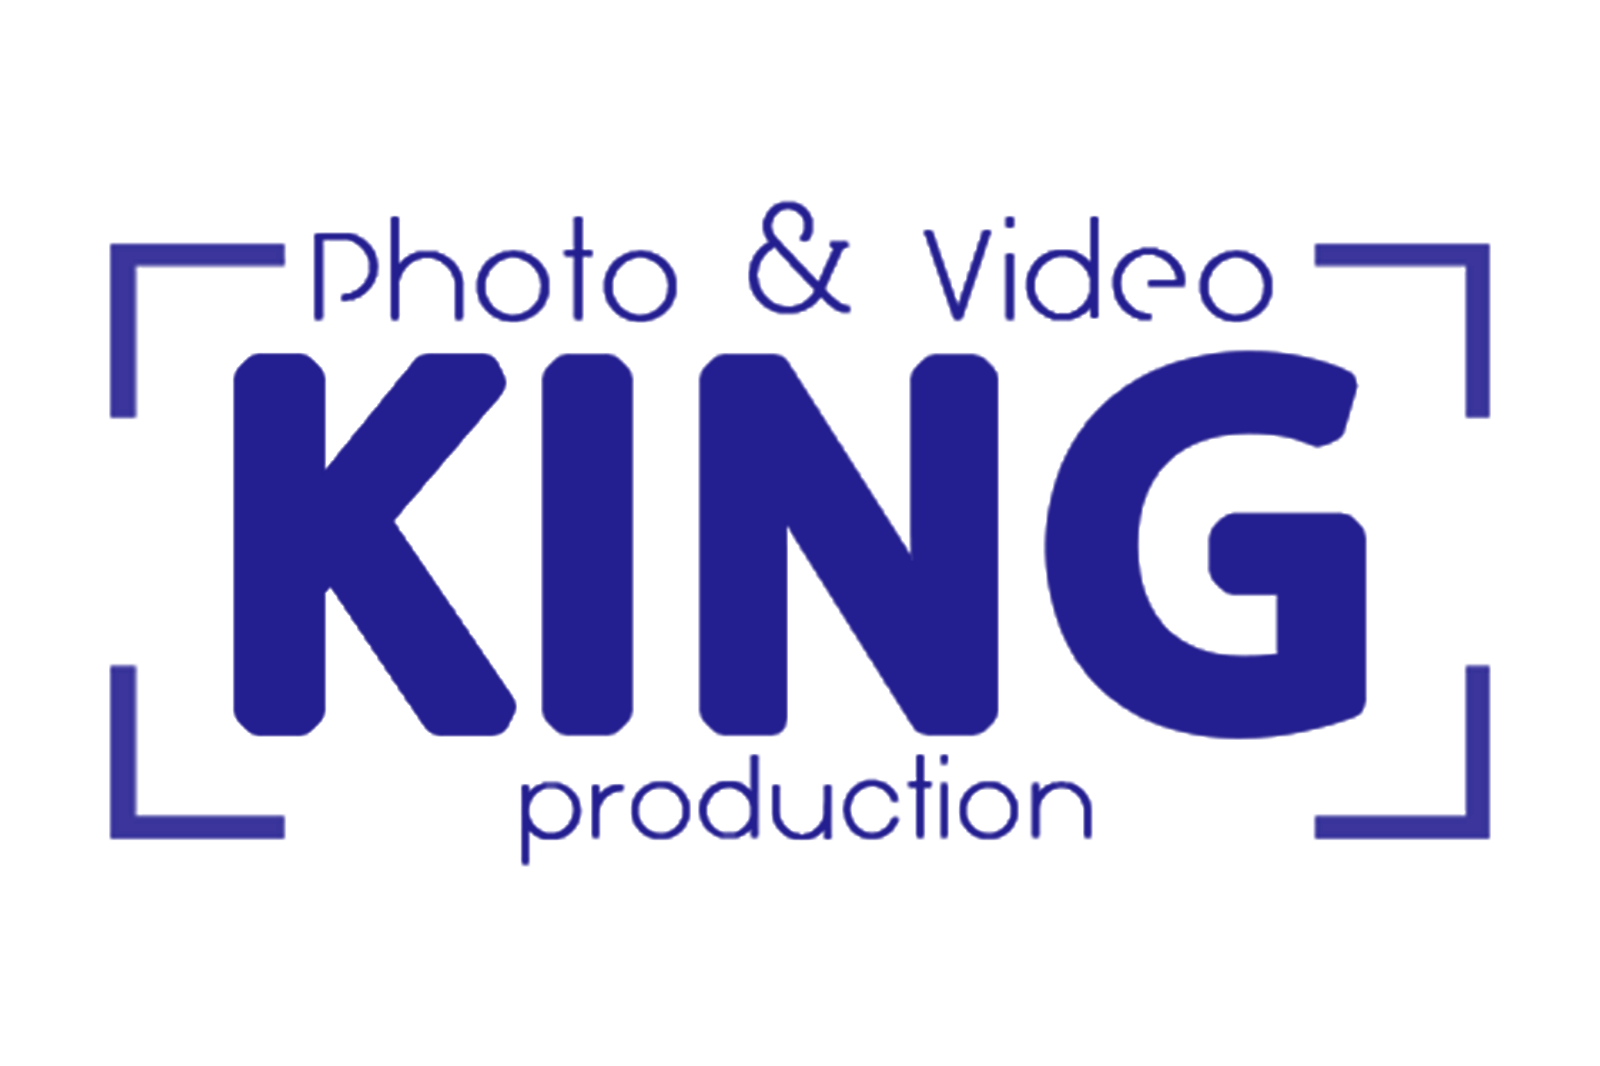 KING Photo & Video production